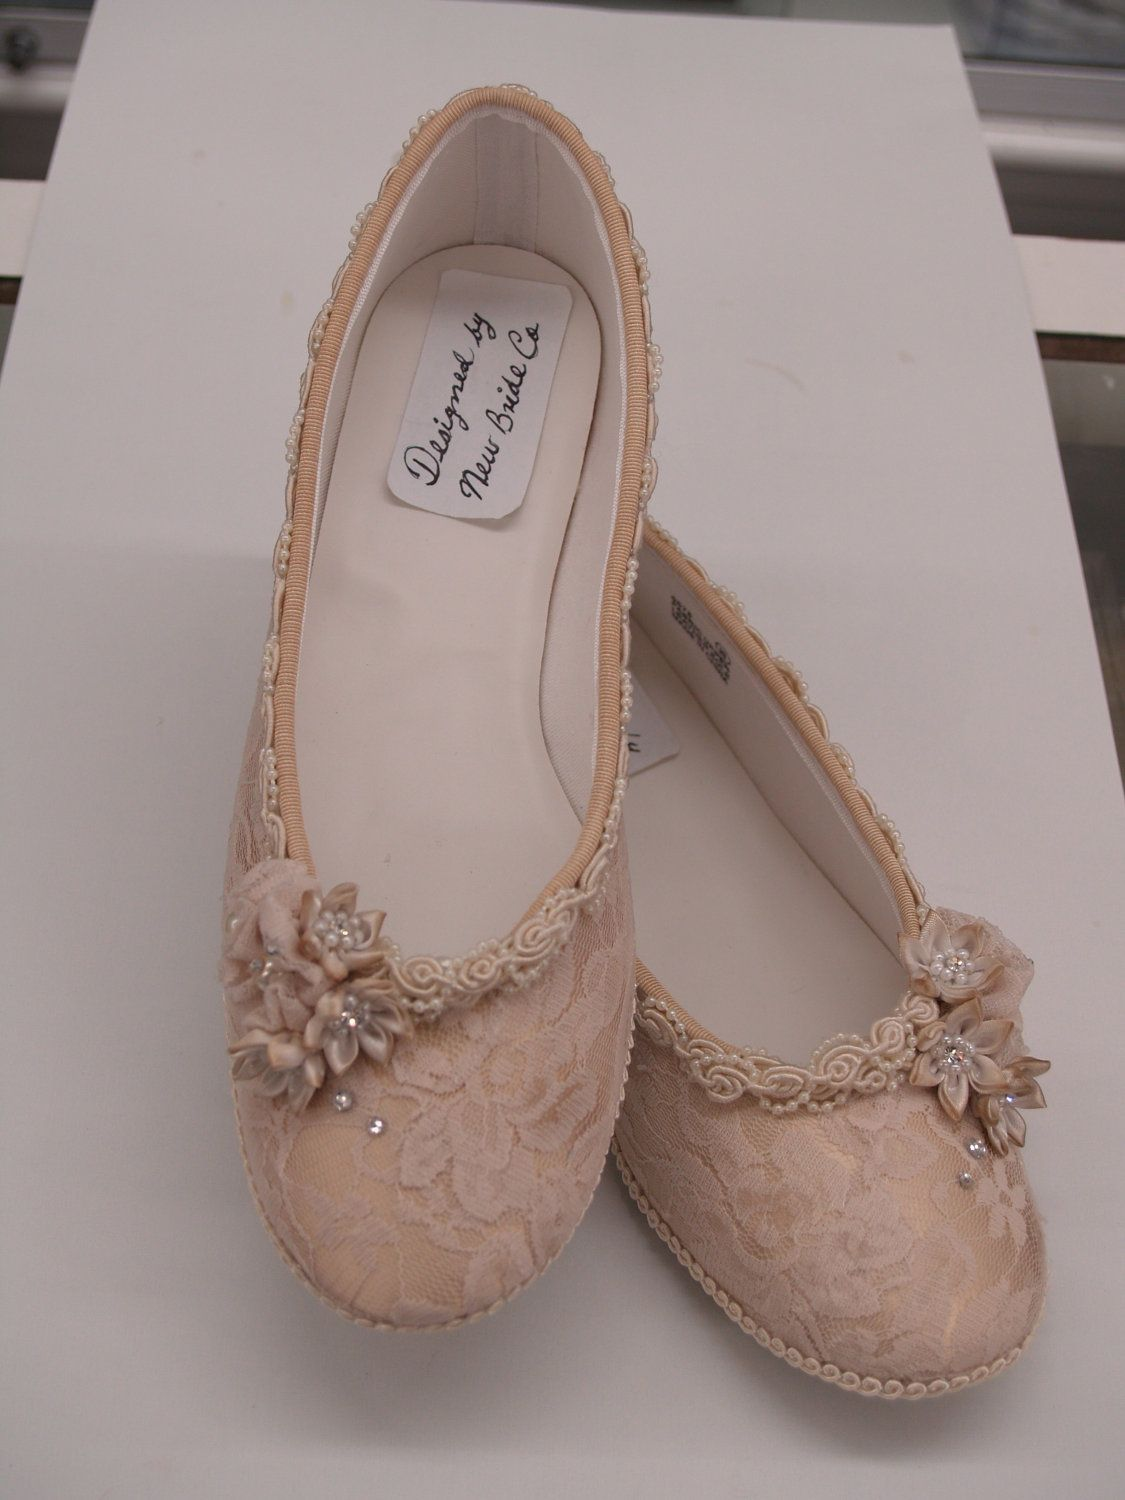 Champagne wedding flats shoes lace vintage modern inspired